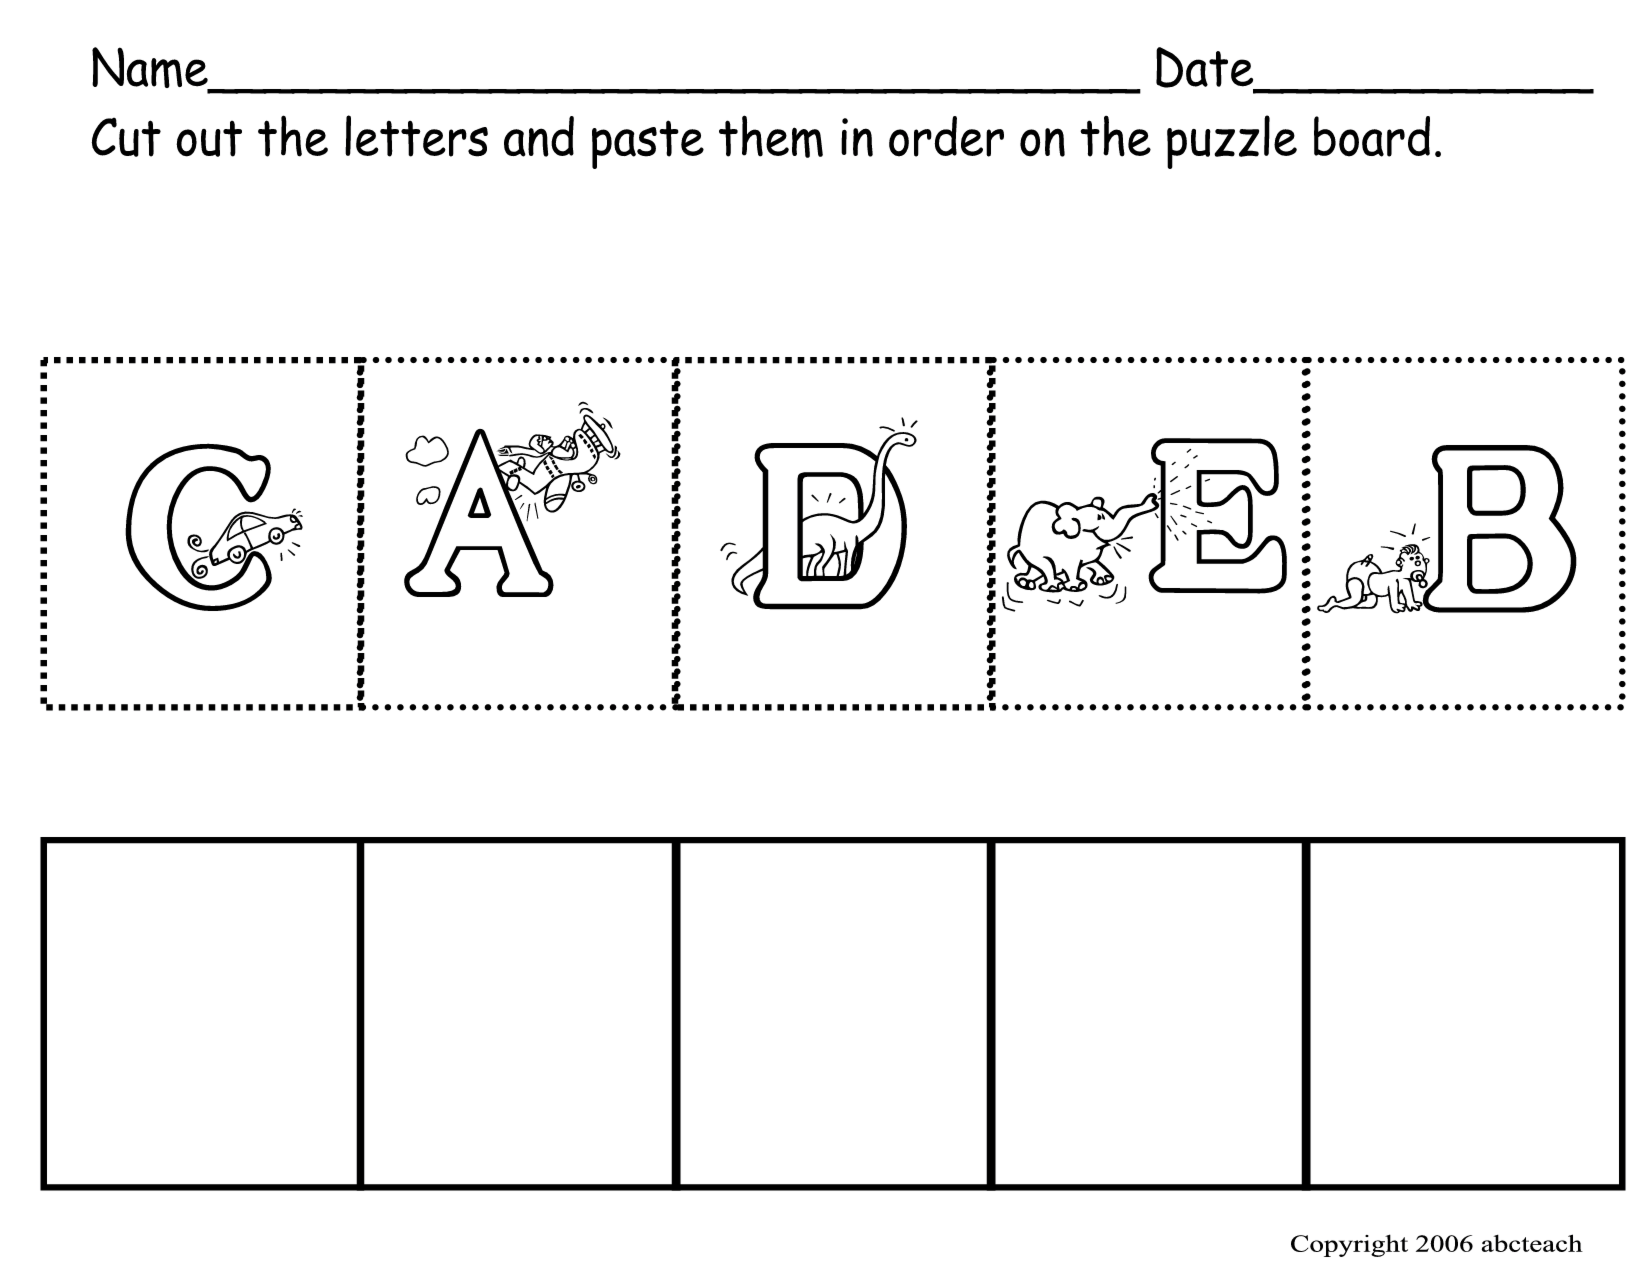 Worksheets Cut And Paste Worksheets For Pre K preschool abc worksheets kiduls printable letters printable